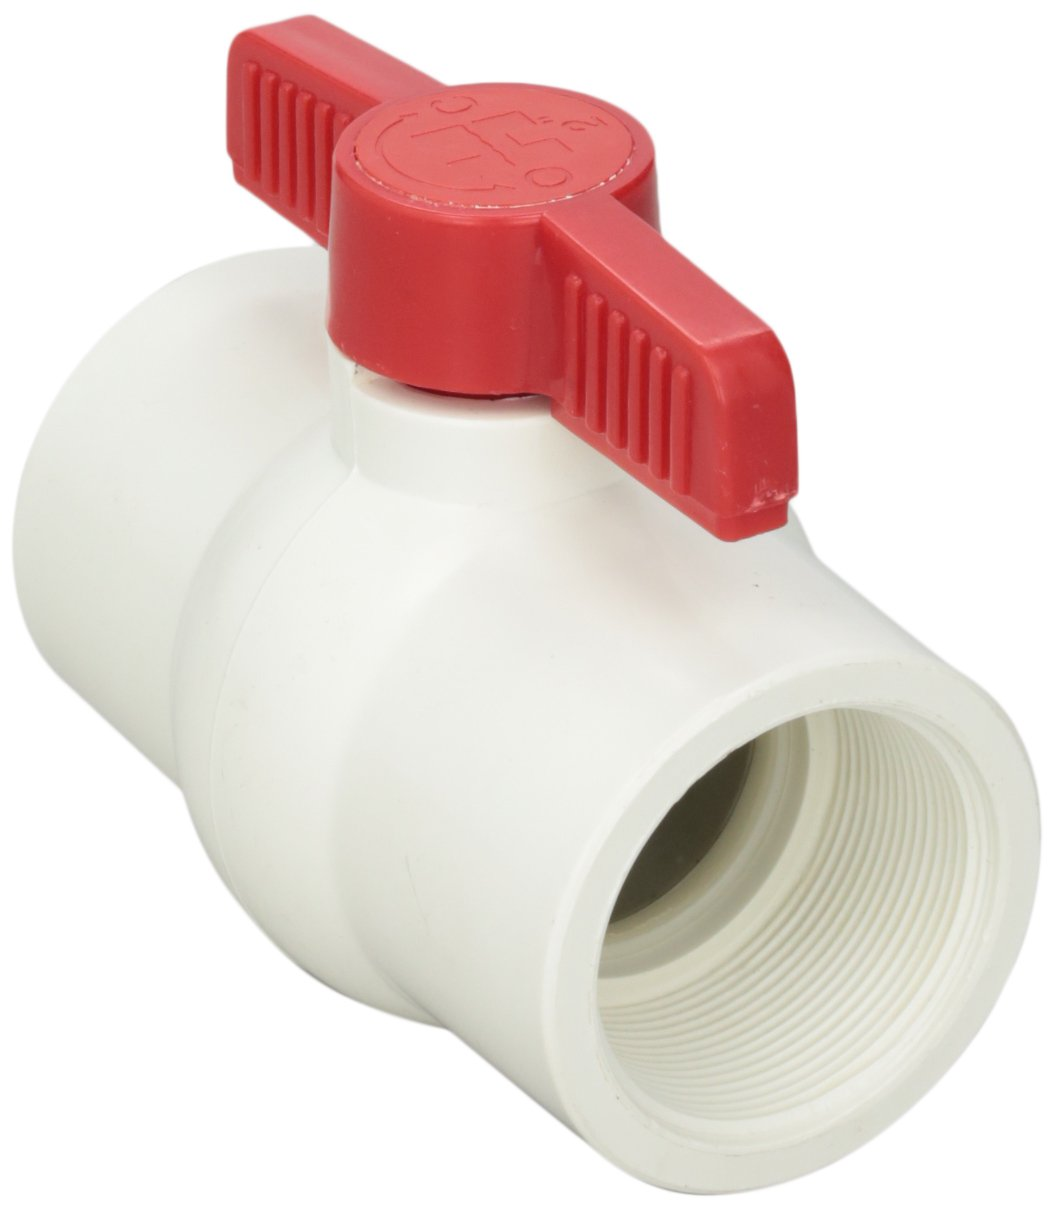 Hayward QVC1020TSEW 2-Inch White QVC Series Compact Ball Valve with Threaded End Connection Hayward - Distribution